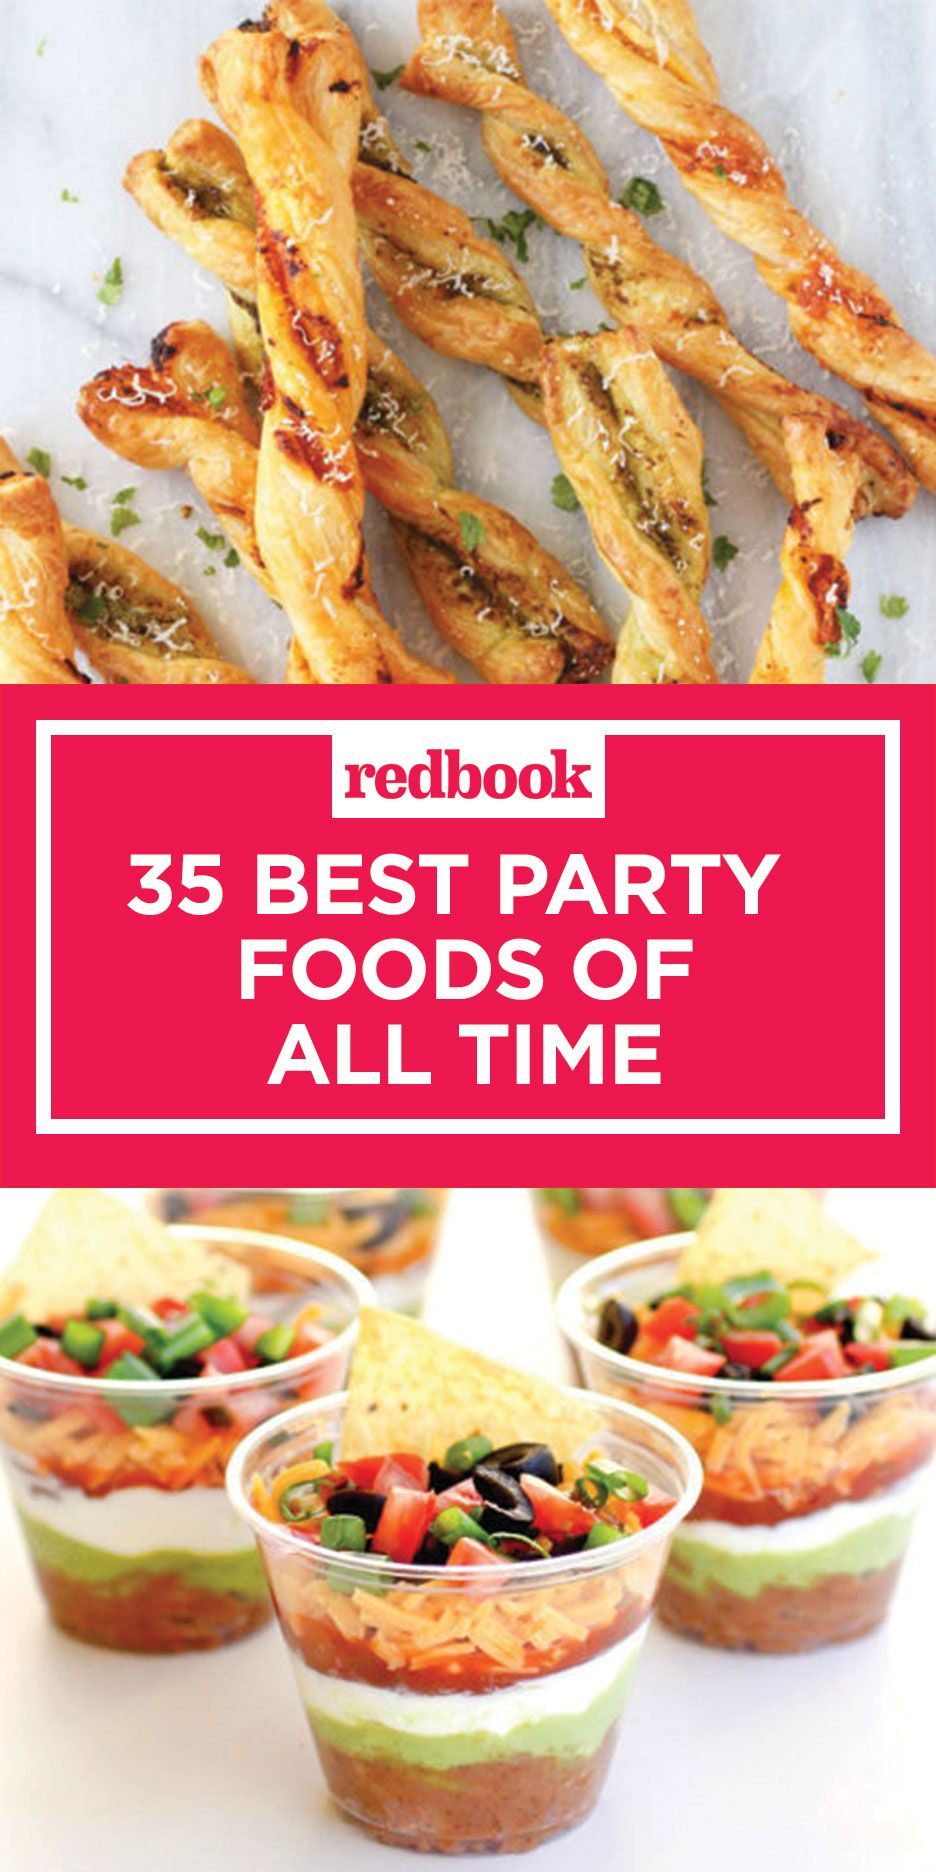 35 party food recipes - best party foods